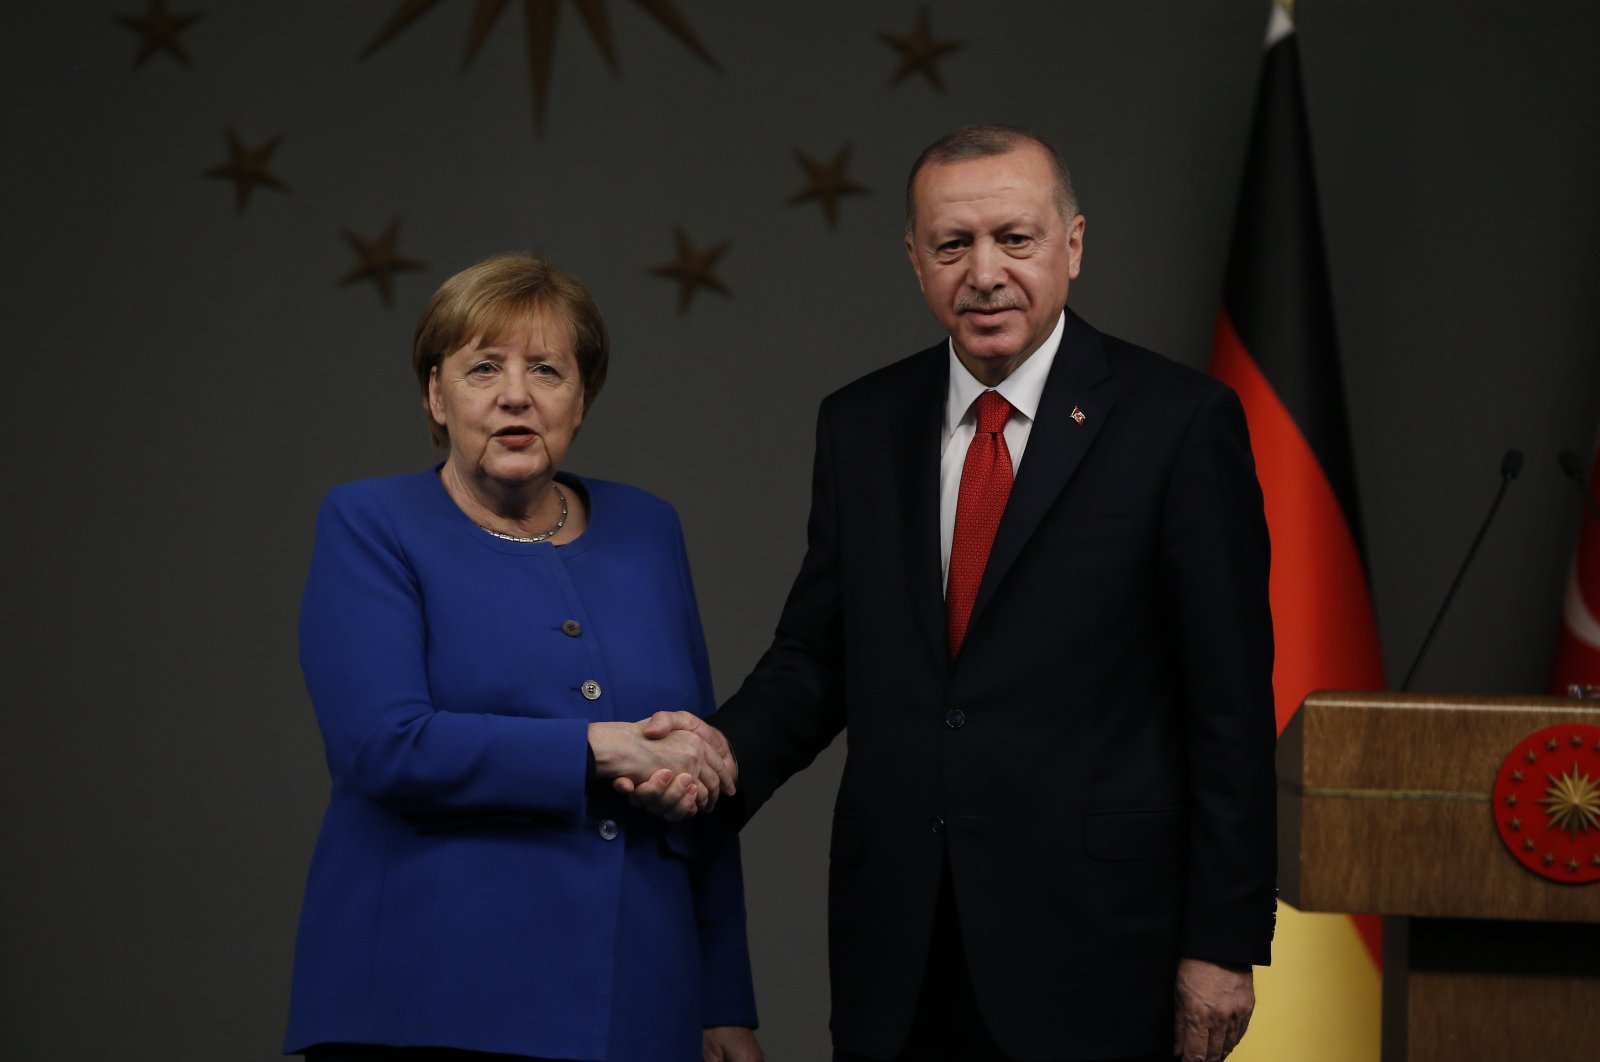 Germany's Chancellor Angela Merkel shakes hands with Turkey's President Recep Tayyip Erdoğan following their joint news conference after their meeting, Istanbul, Jan. 24, 2020. (AP Photo)